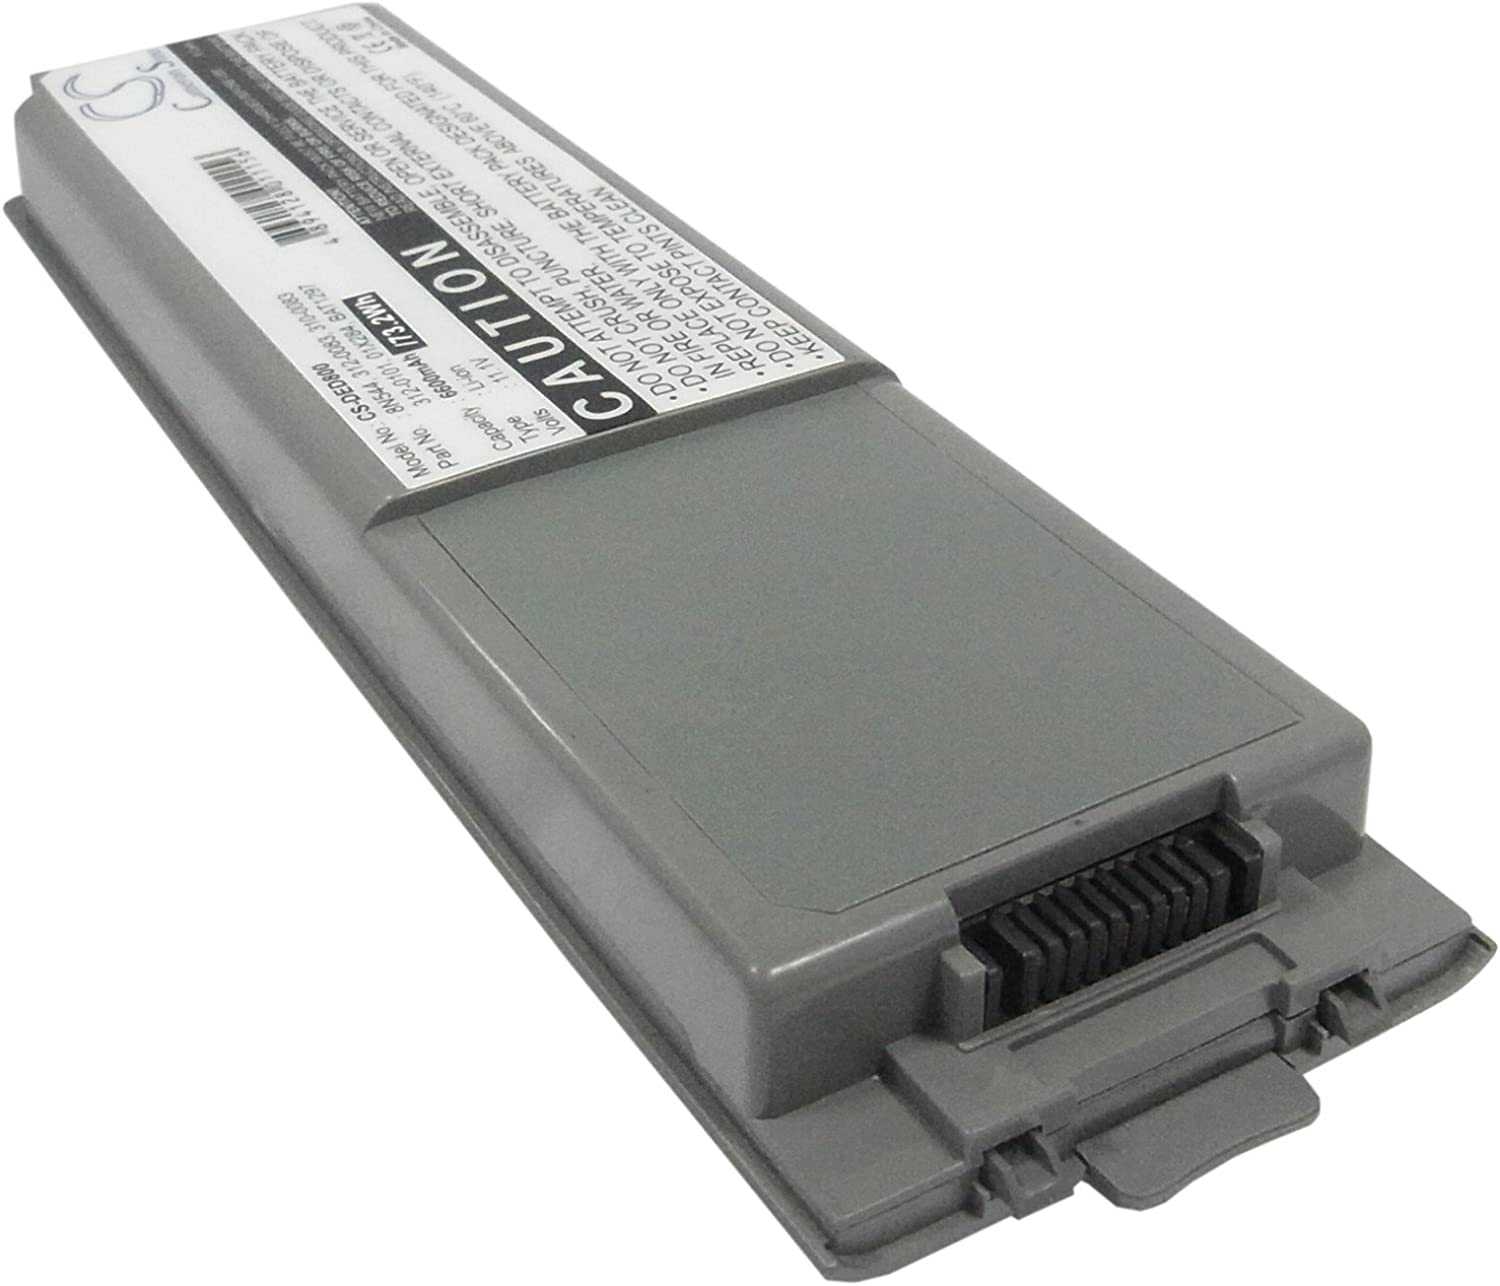 GAXI Battery for DELL Inspiron 8500, Inspiron 8600, Latitude D800 Replacement for P/N 01X284, 2P700, 310-0083